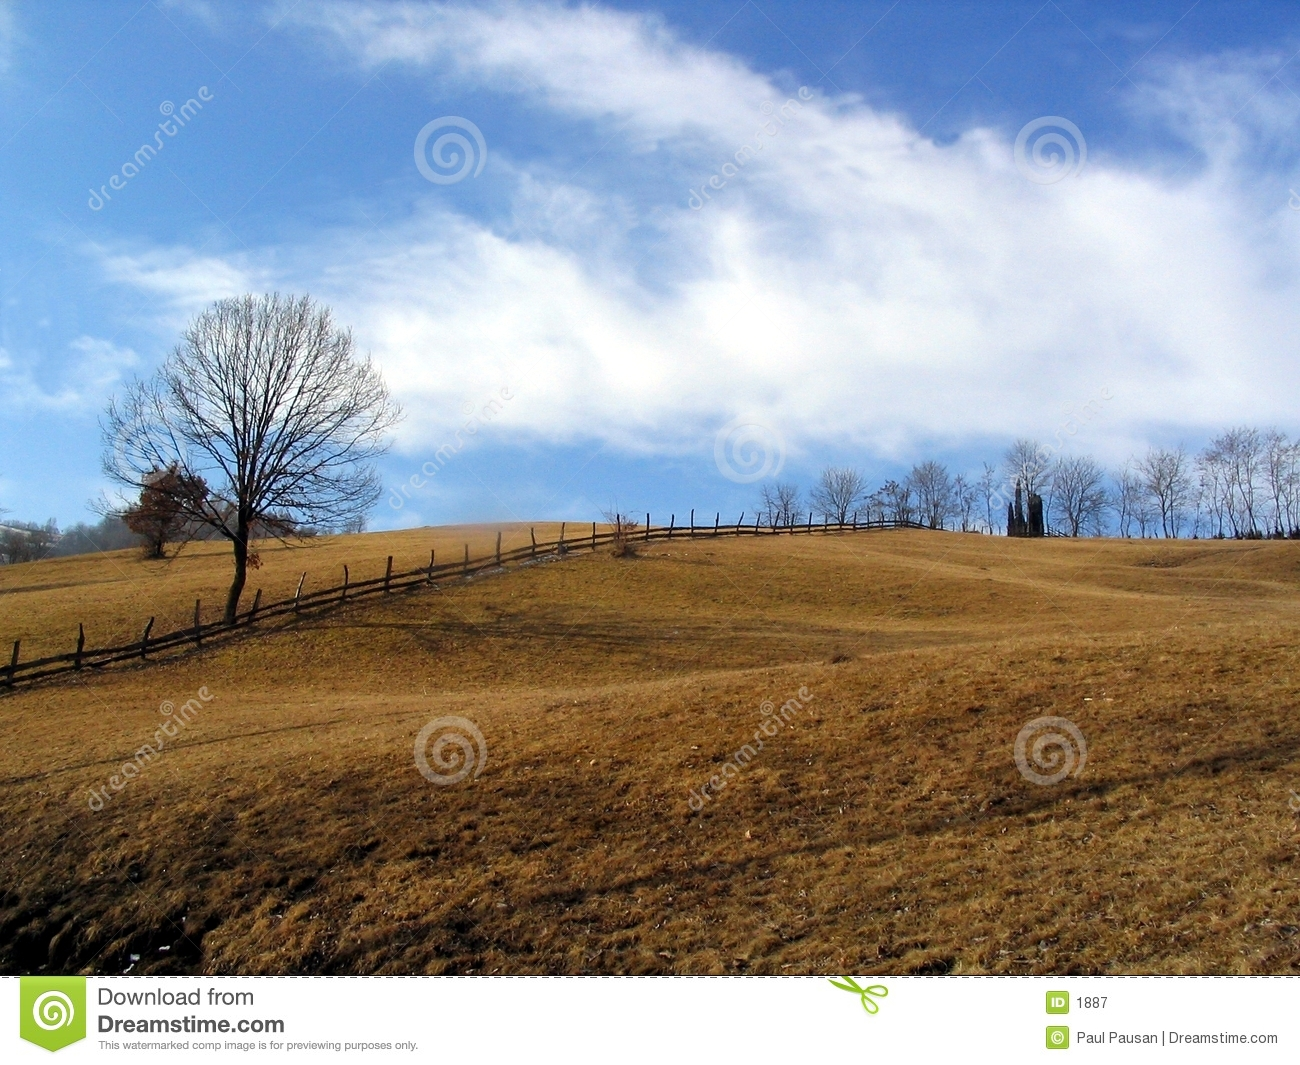 Trees and hills